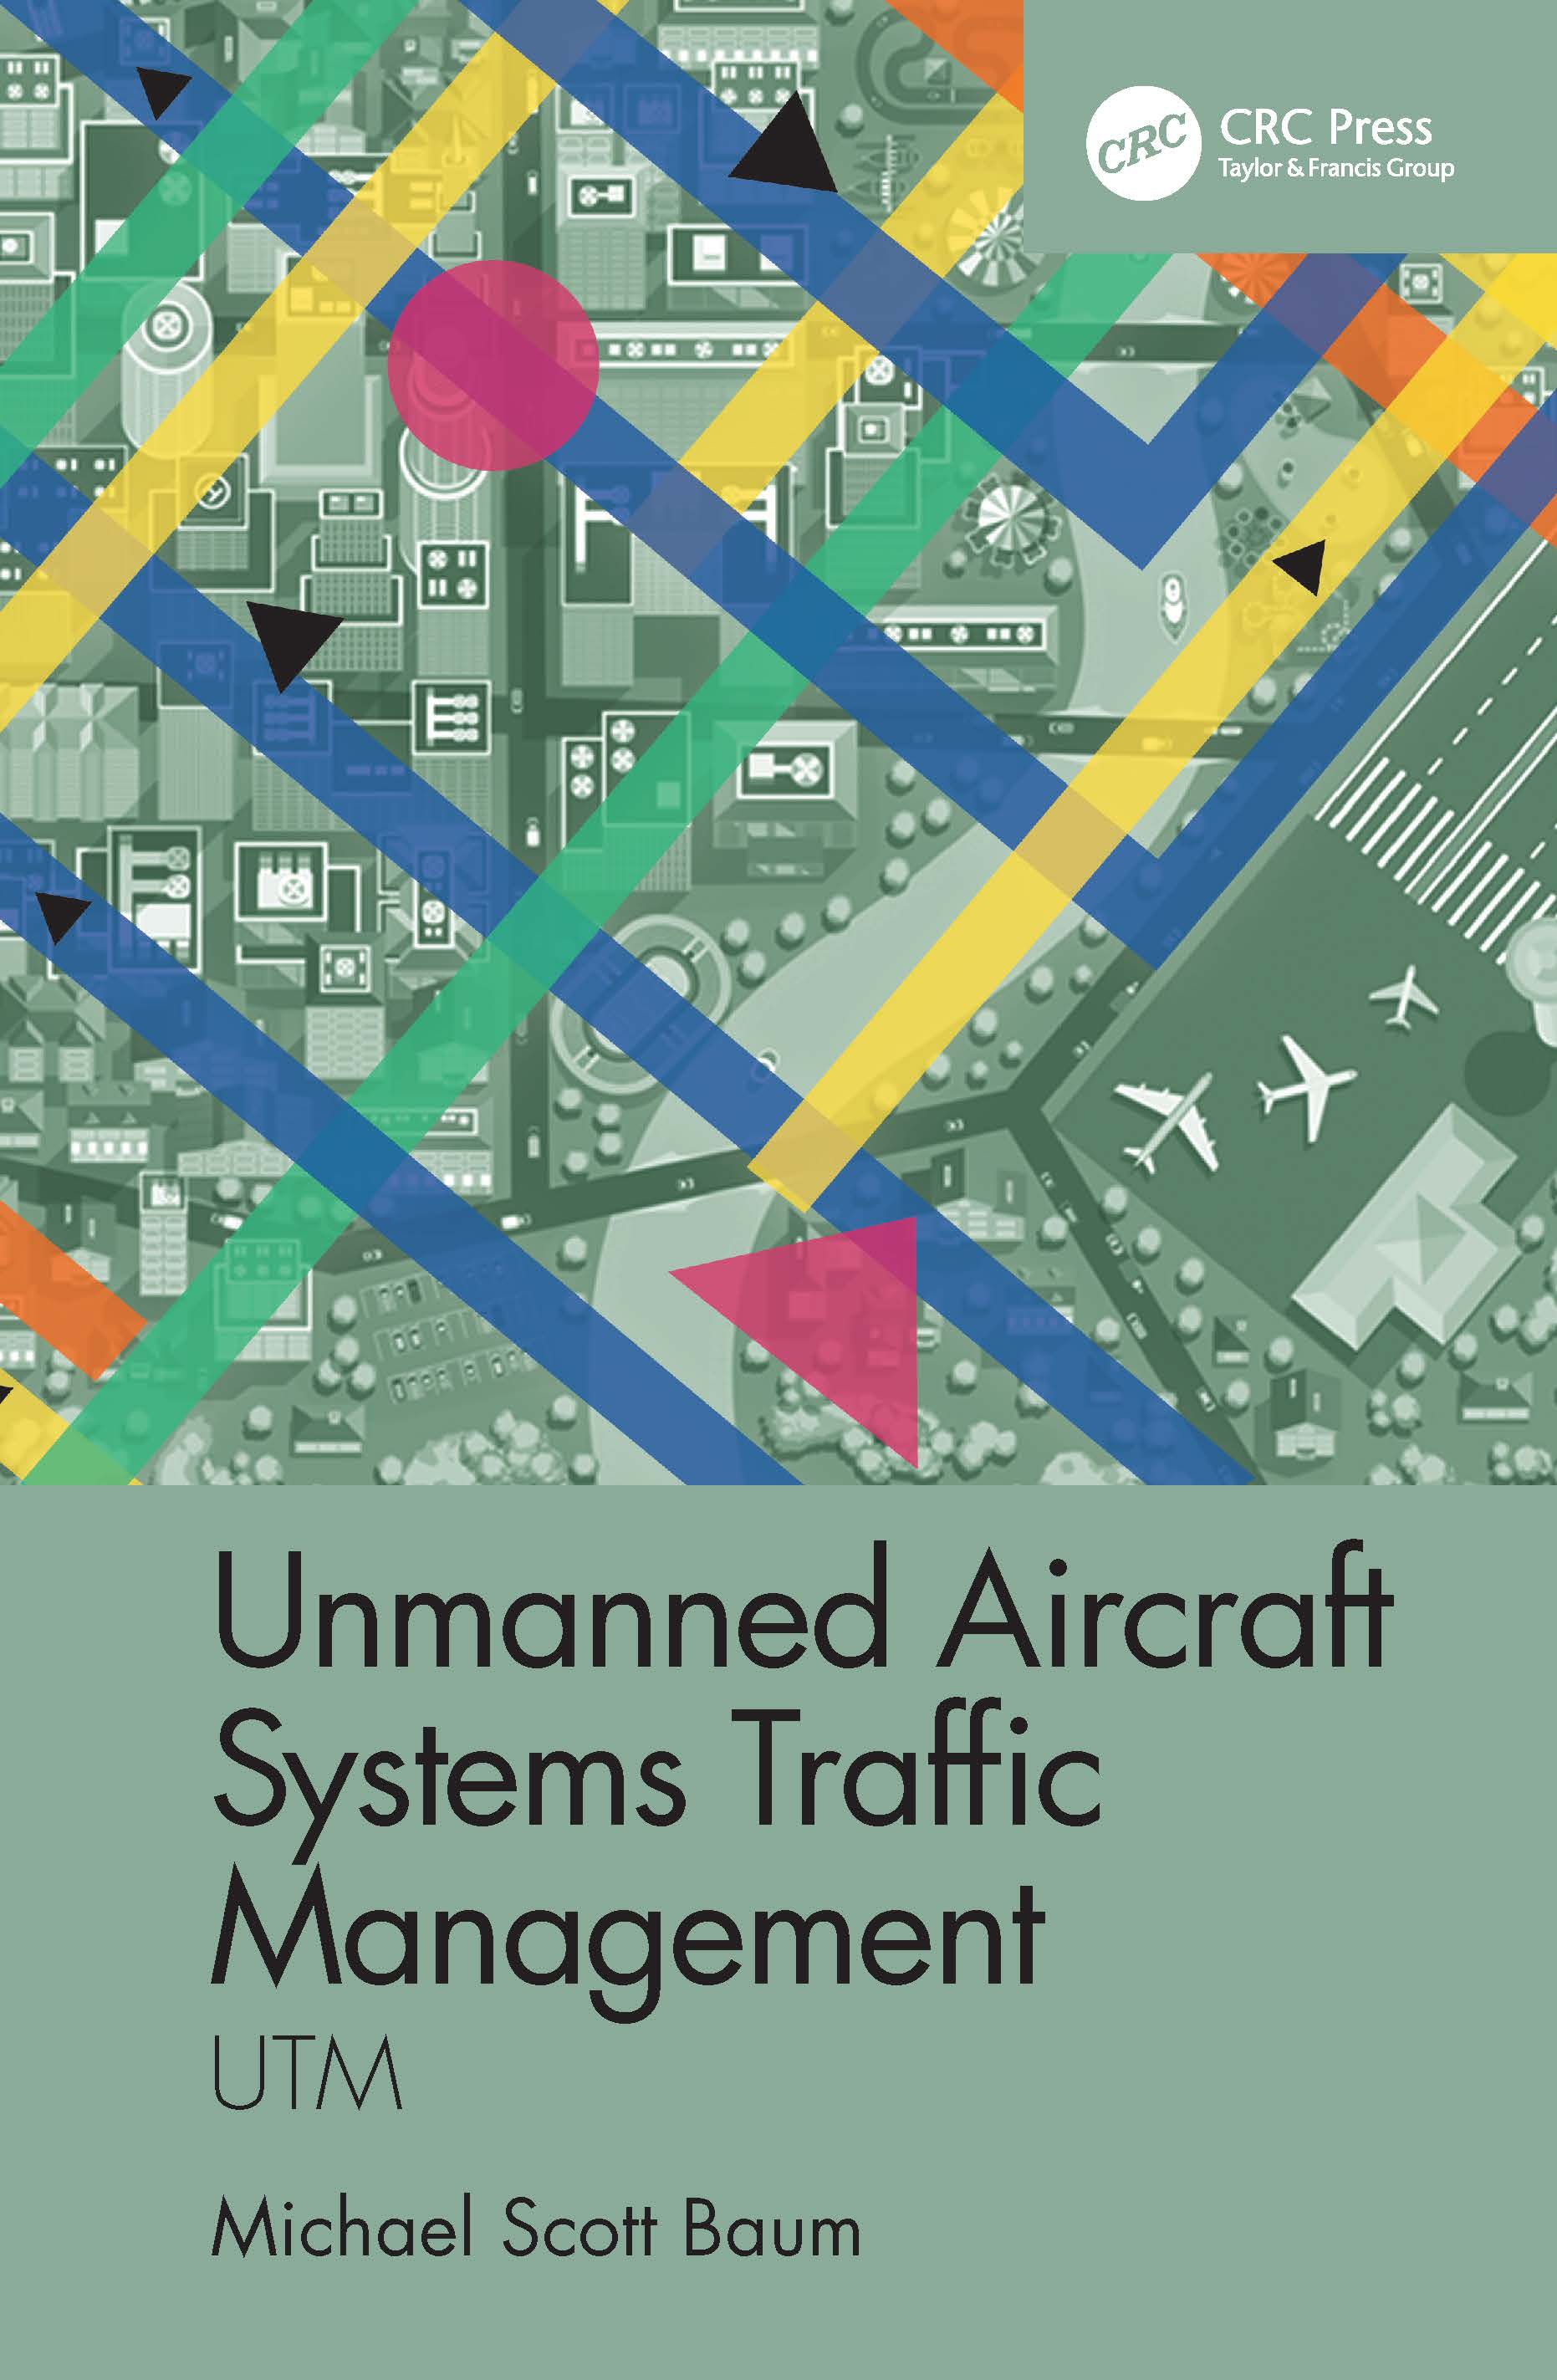 Unmanned Aircraft Systems Traffic Management